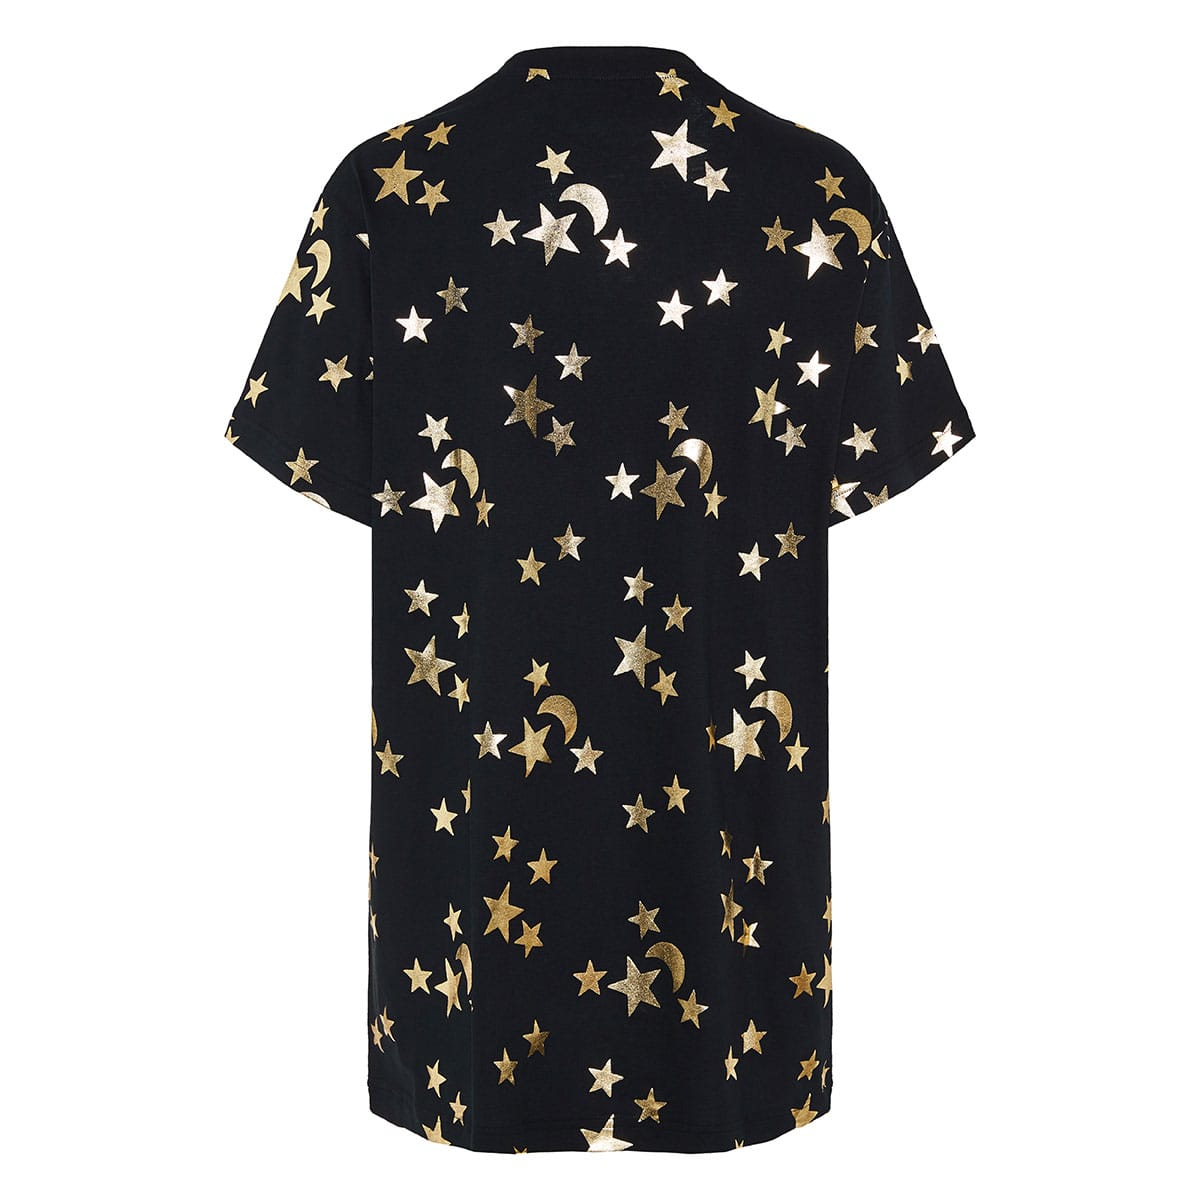 Star-printed oversized logo t-shirt